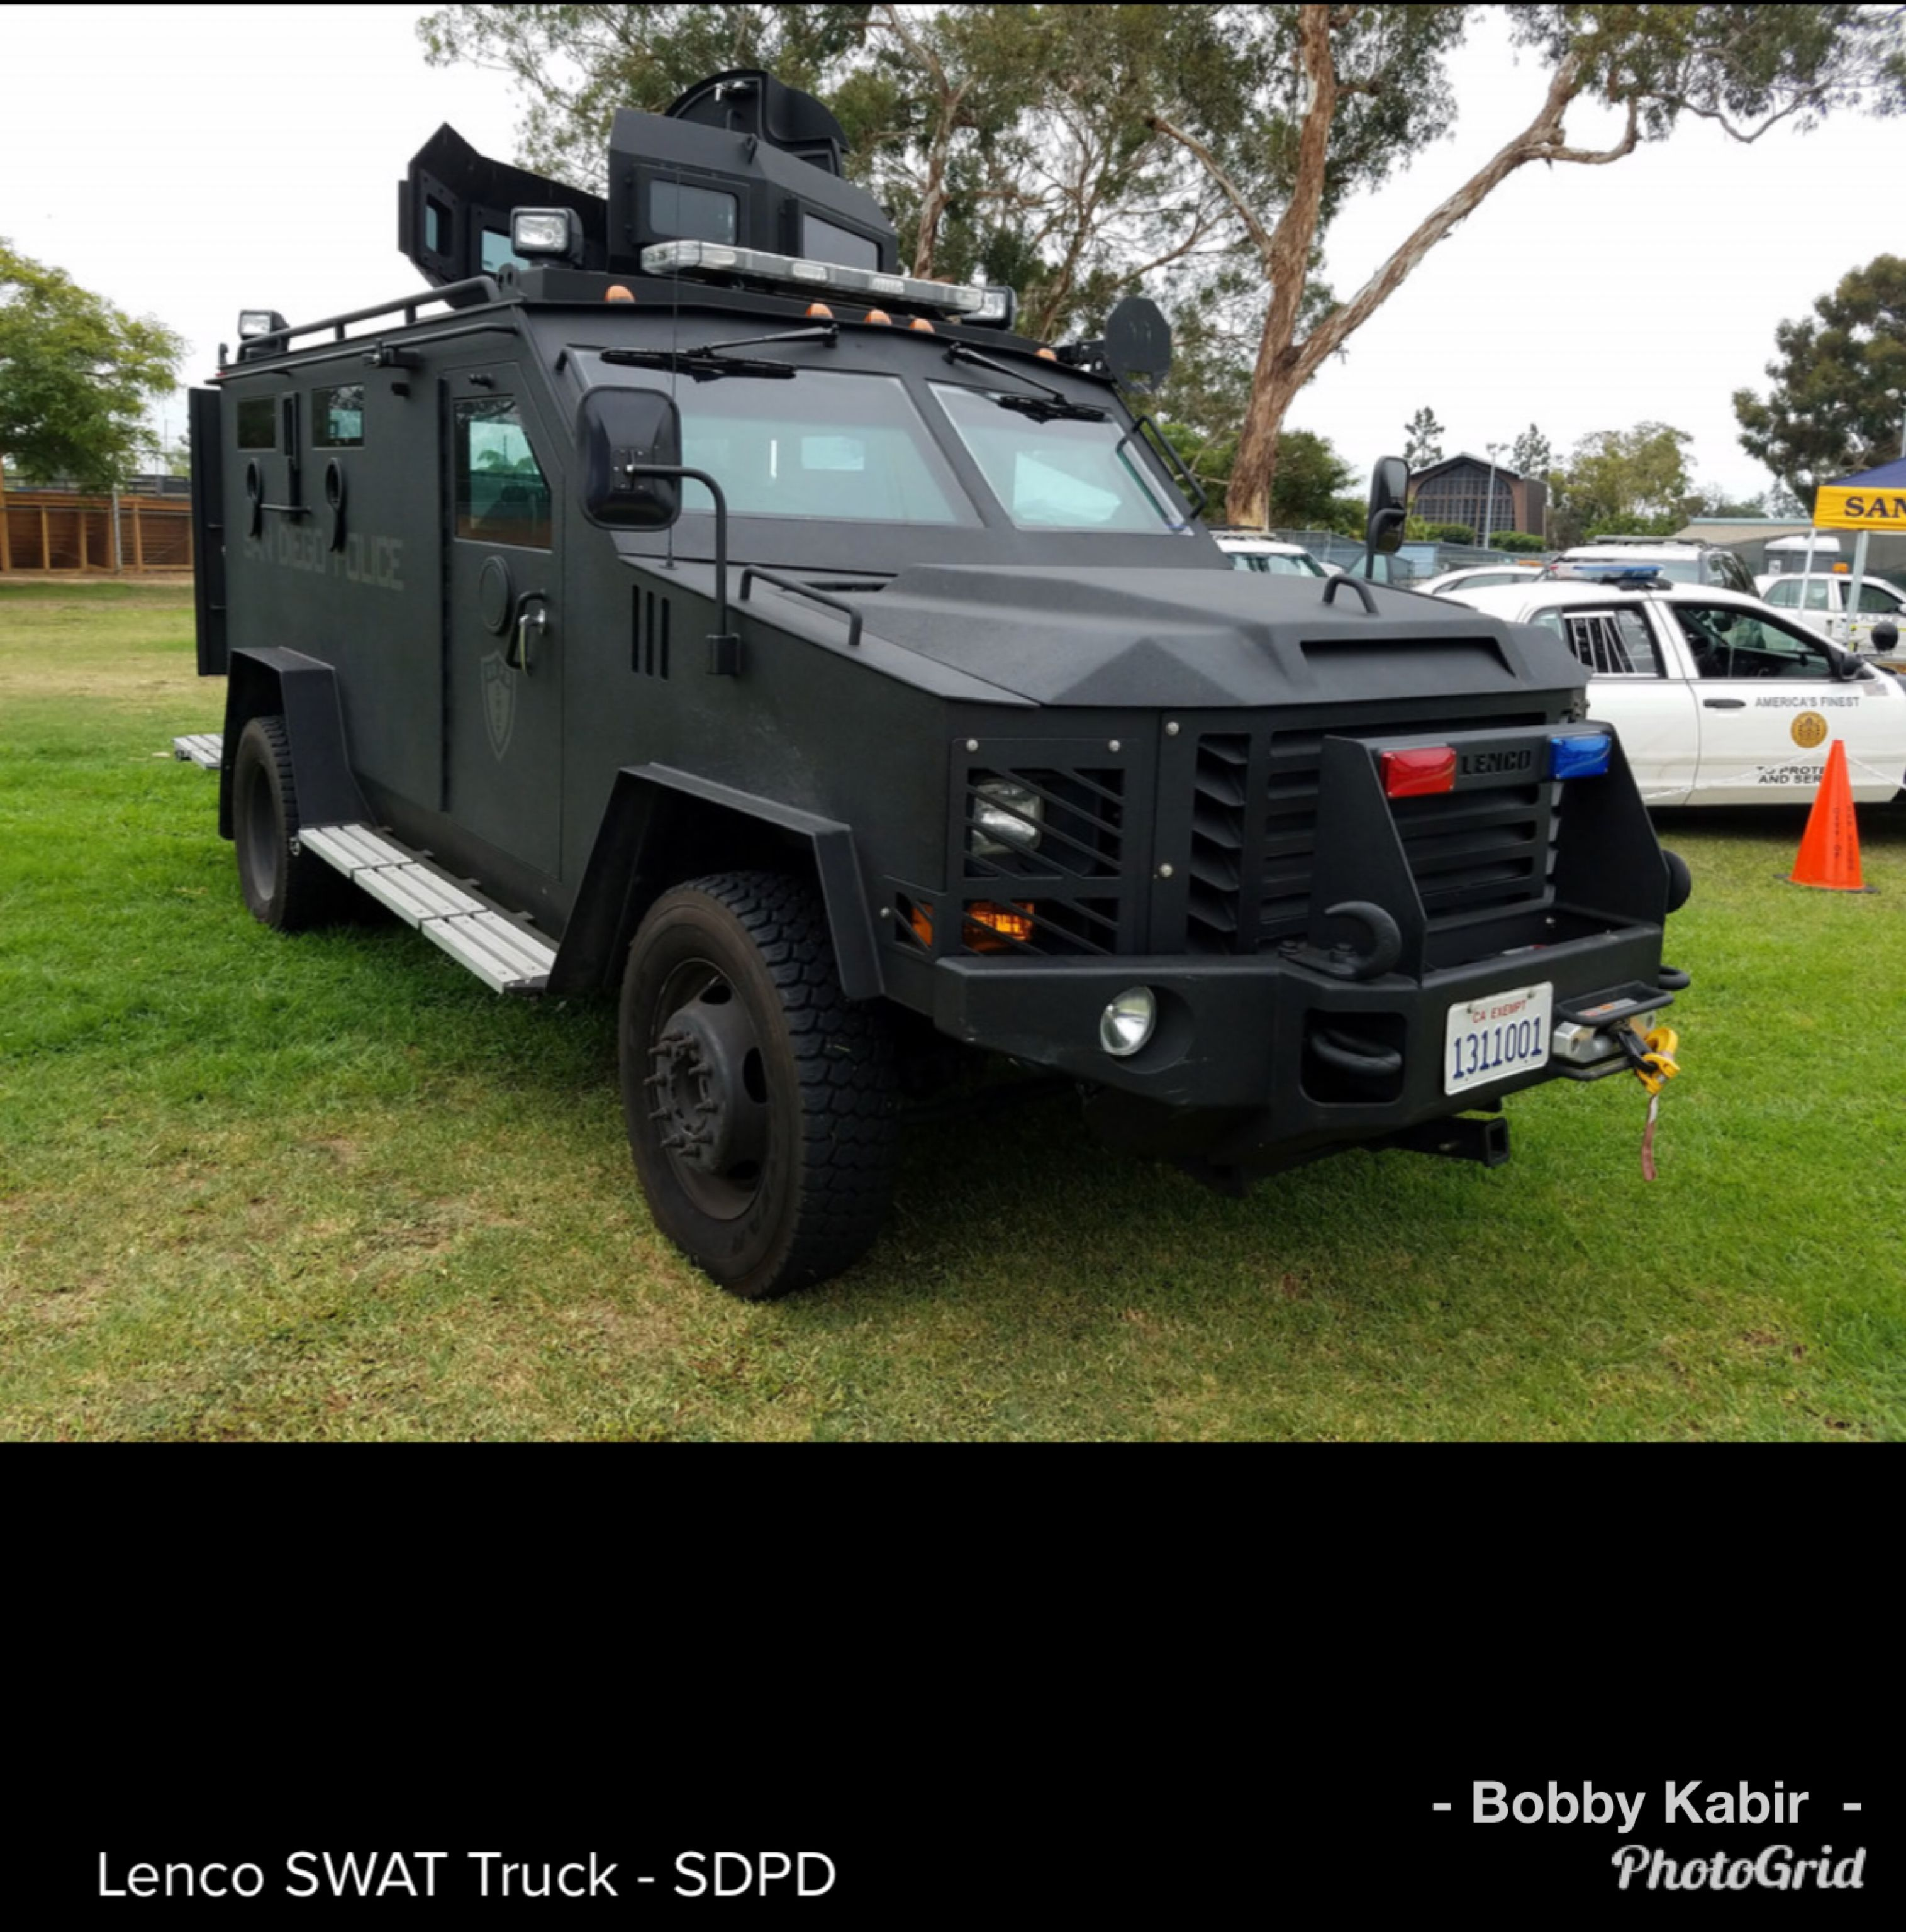 Lenco Swat Truck By Mr38 On Flickr Police Truck Emergency Vehicles Armored Vehicles